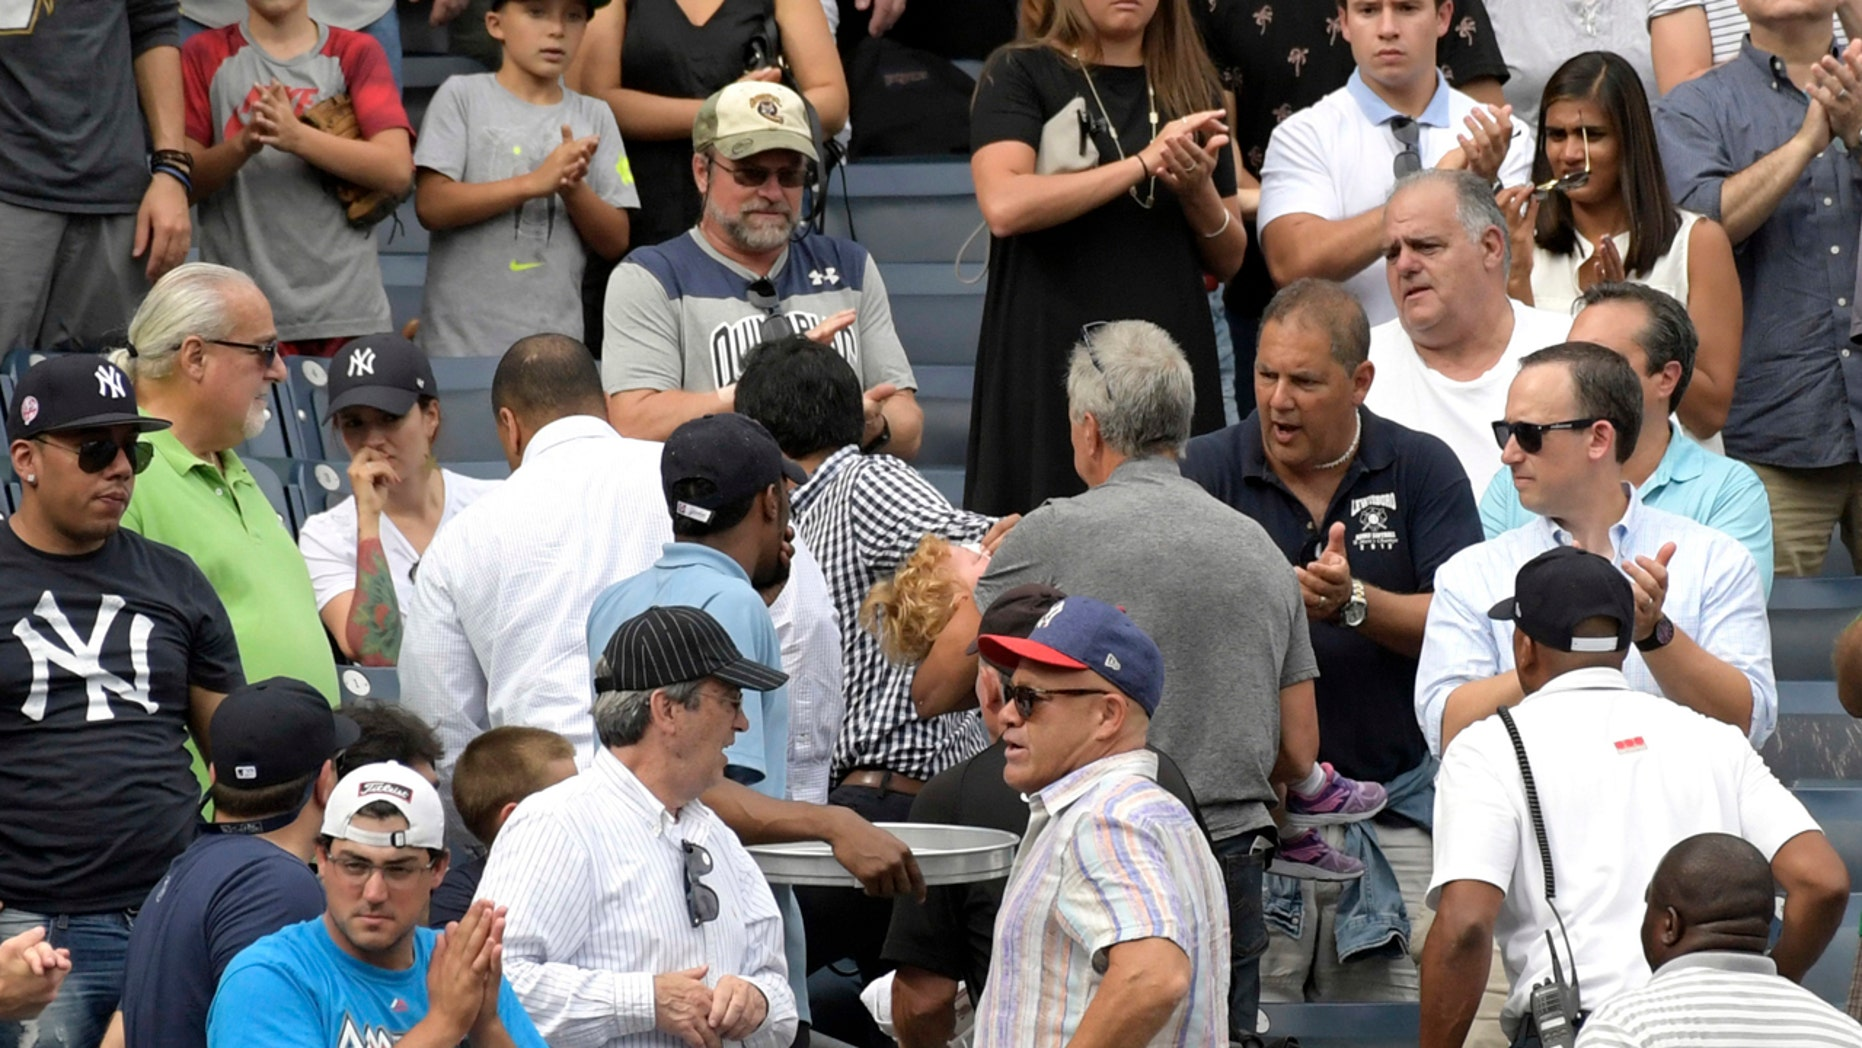 Baseball fans react after a toddler was hit by a foul ball Wednesday at Yankee Stadium.